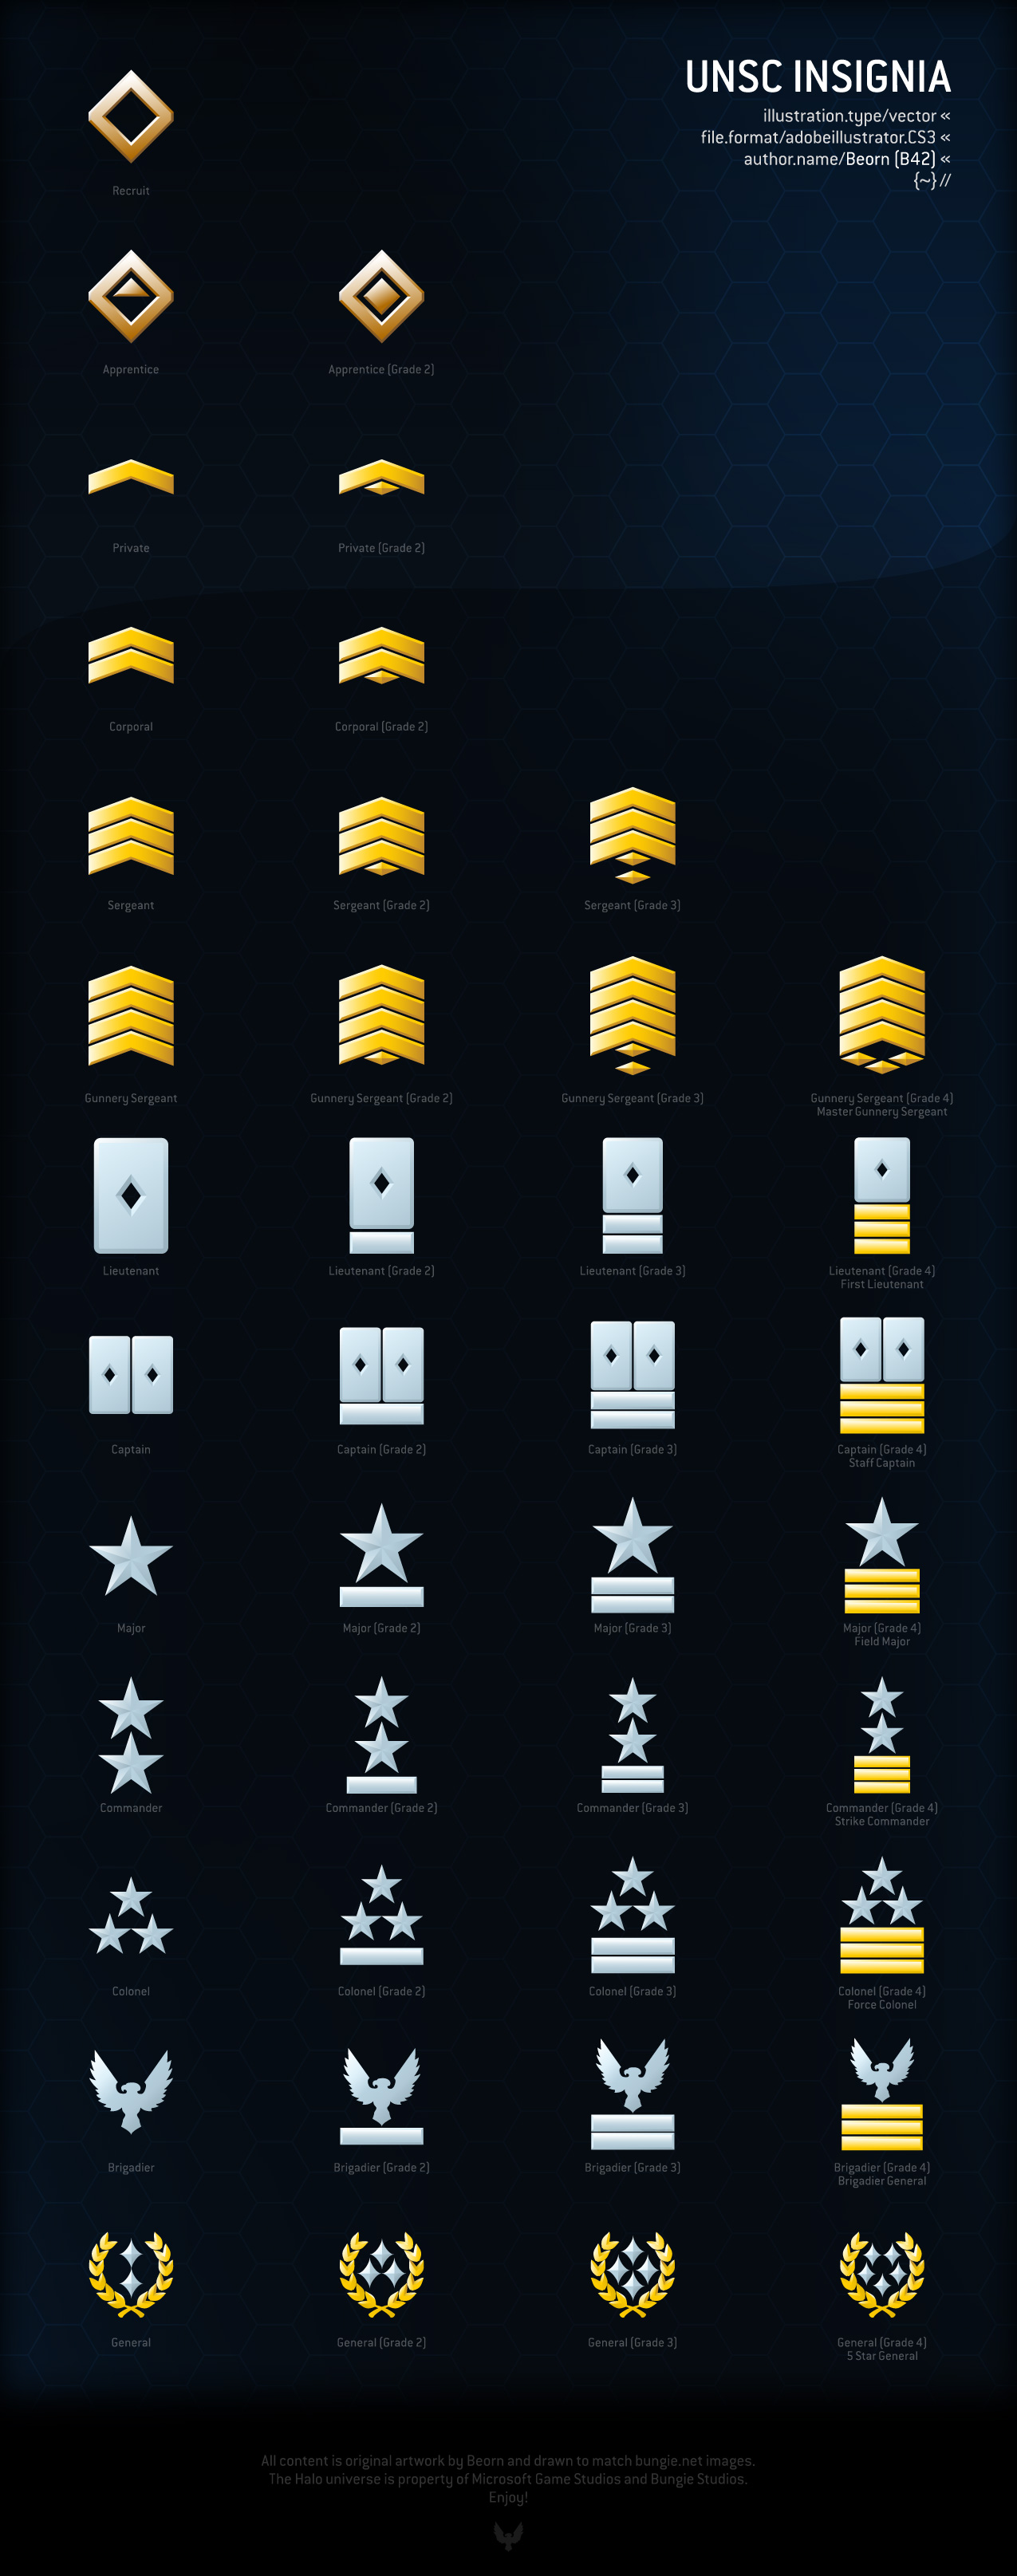 List the military ranks in order from the rank and file to the highest